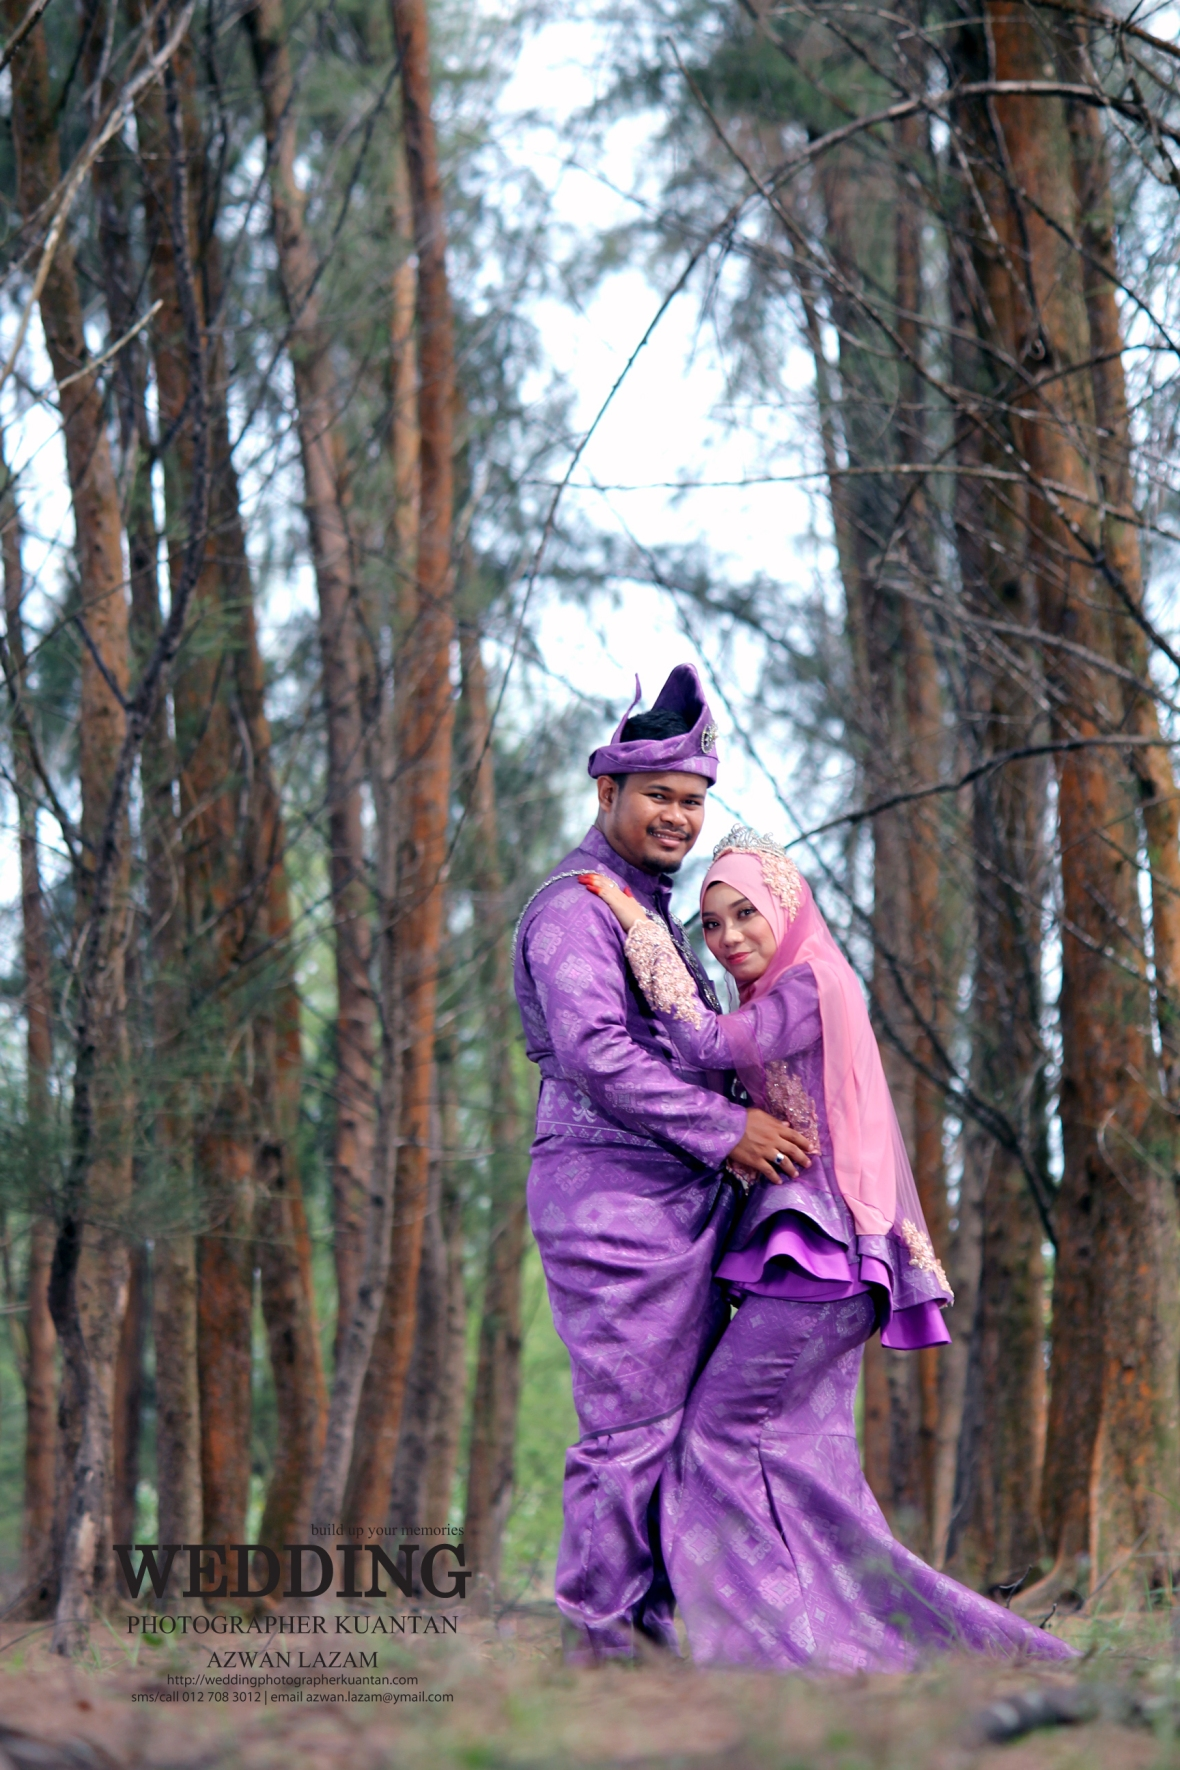 wedding-photographer-kuantan-7